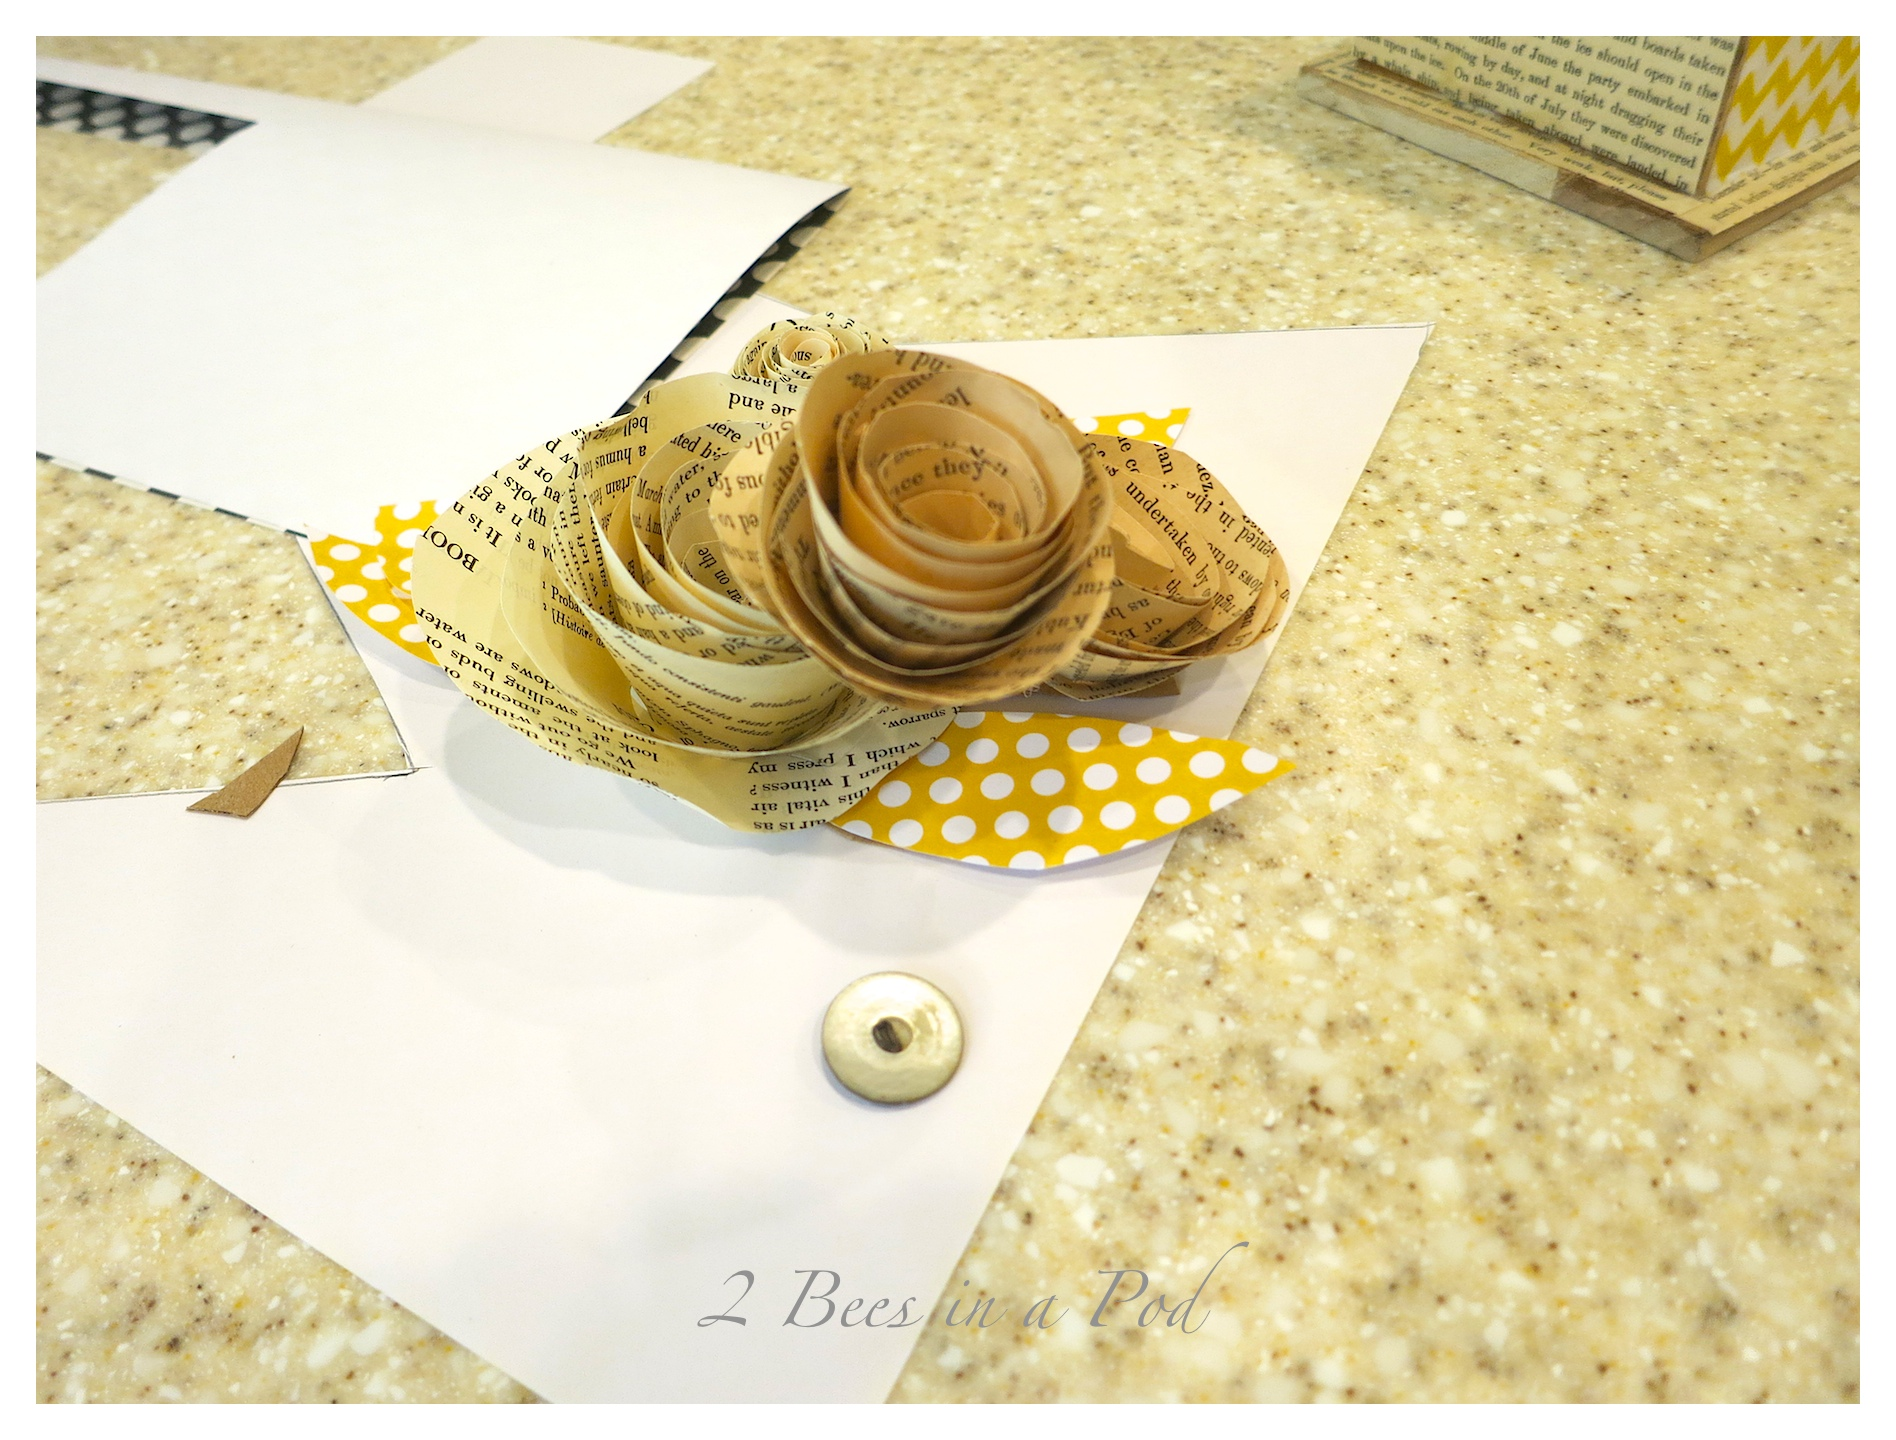 Create a decorative birdhouse. we usedd Mod Podge. scrapbook paper, antique book pages and a pre made birdhouse. For added decoration we made flowers from the antique book pages.